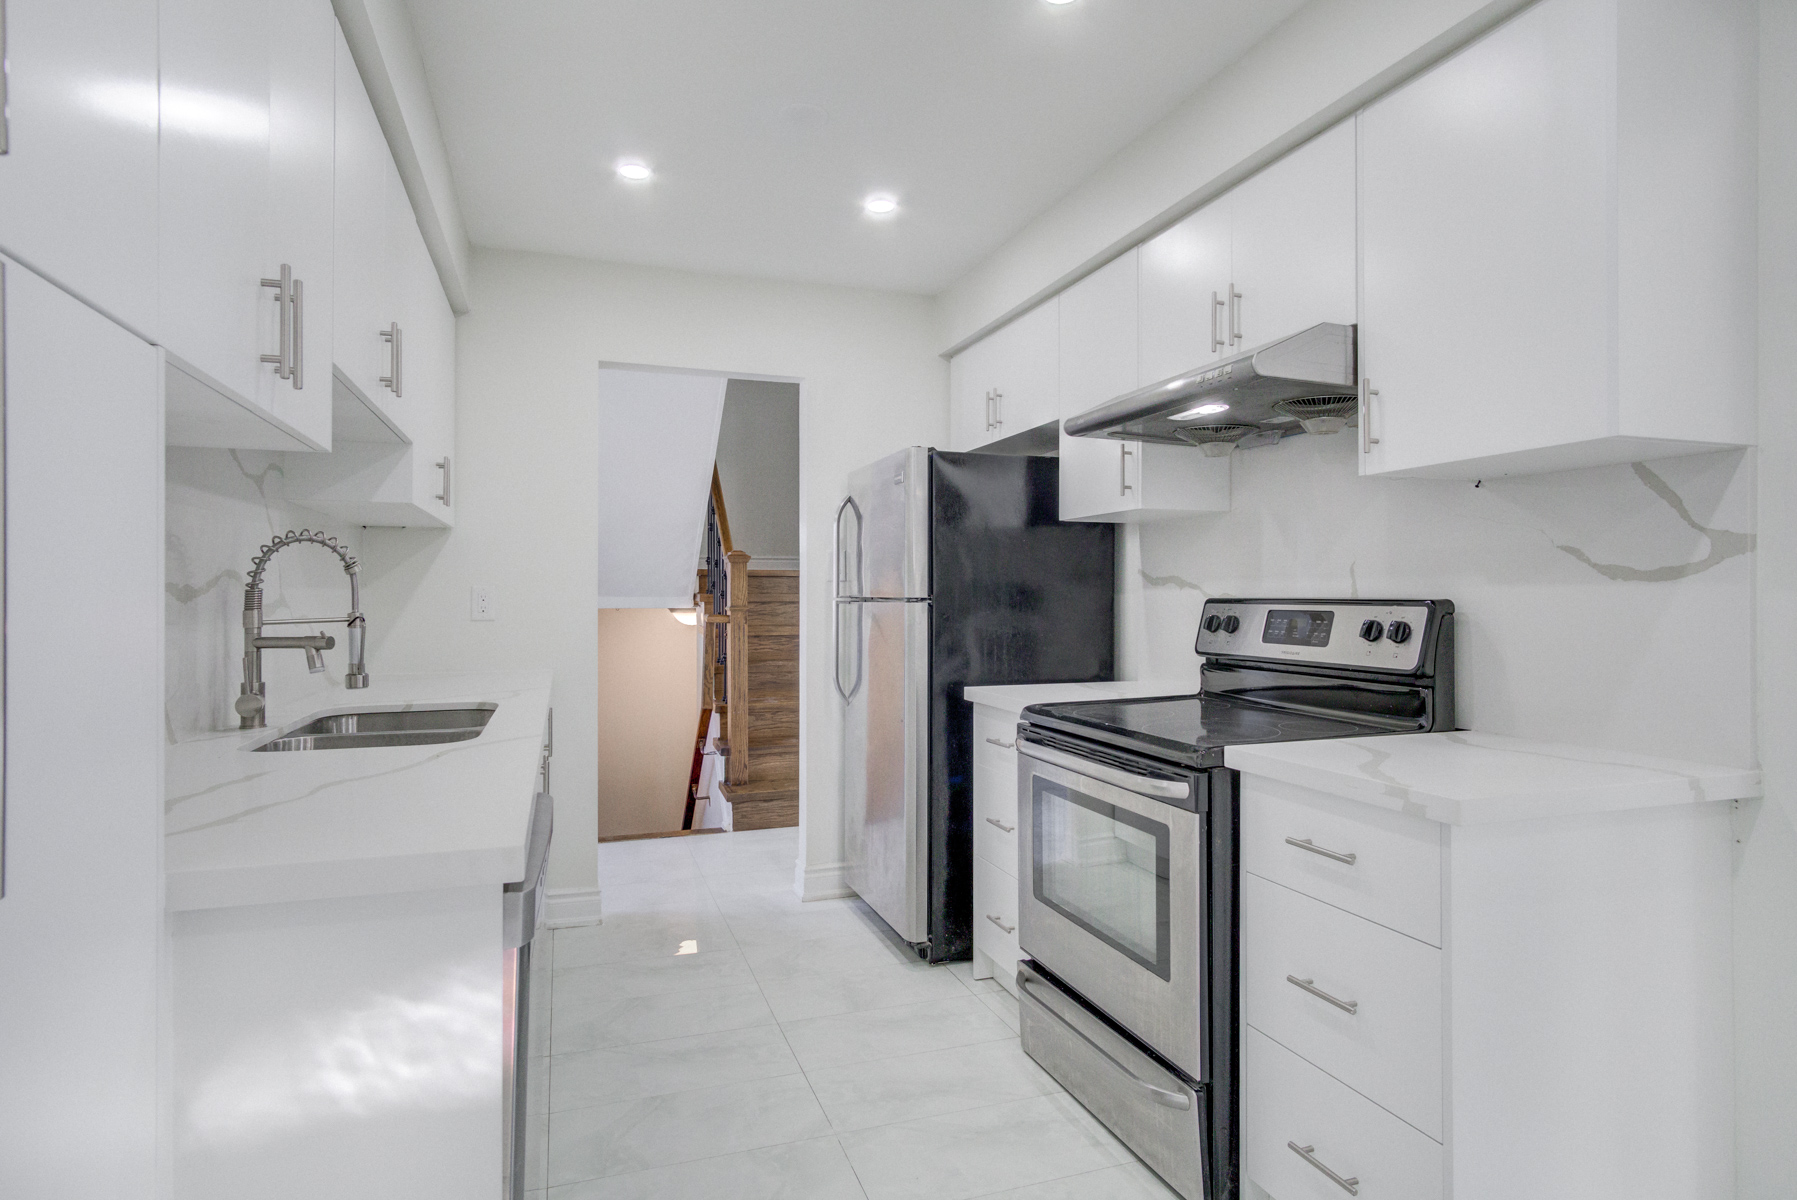 brampton-houses-for-sale-real-estate-kitchen-stainless-steel-appliances